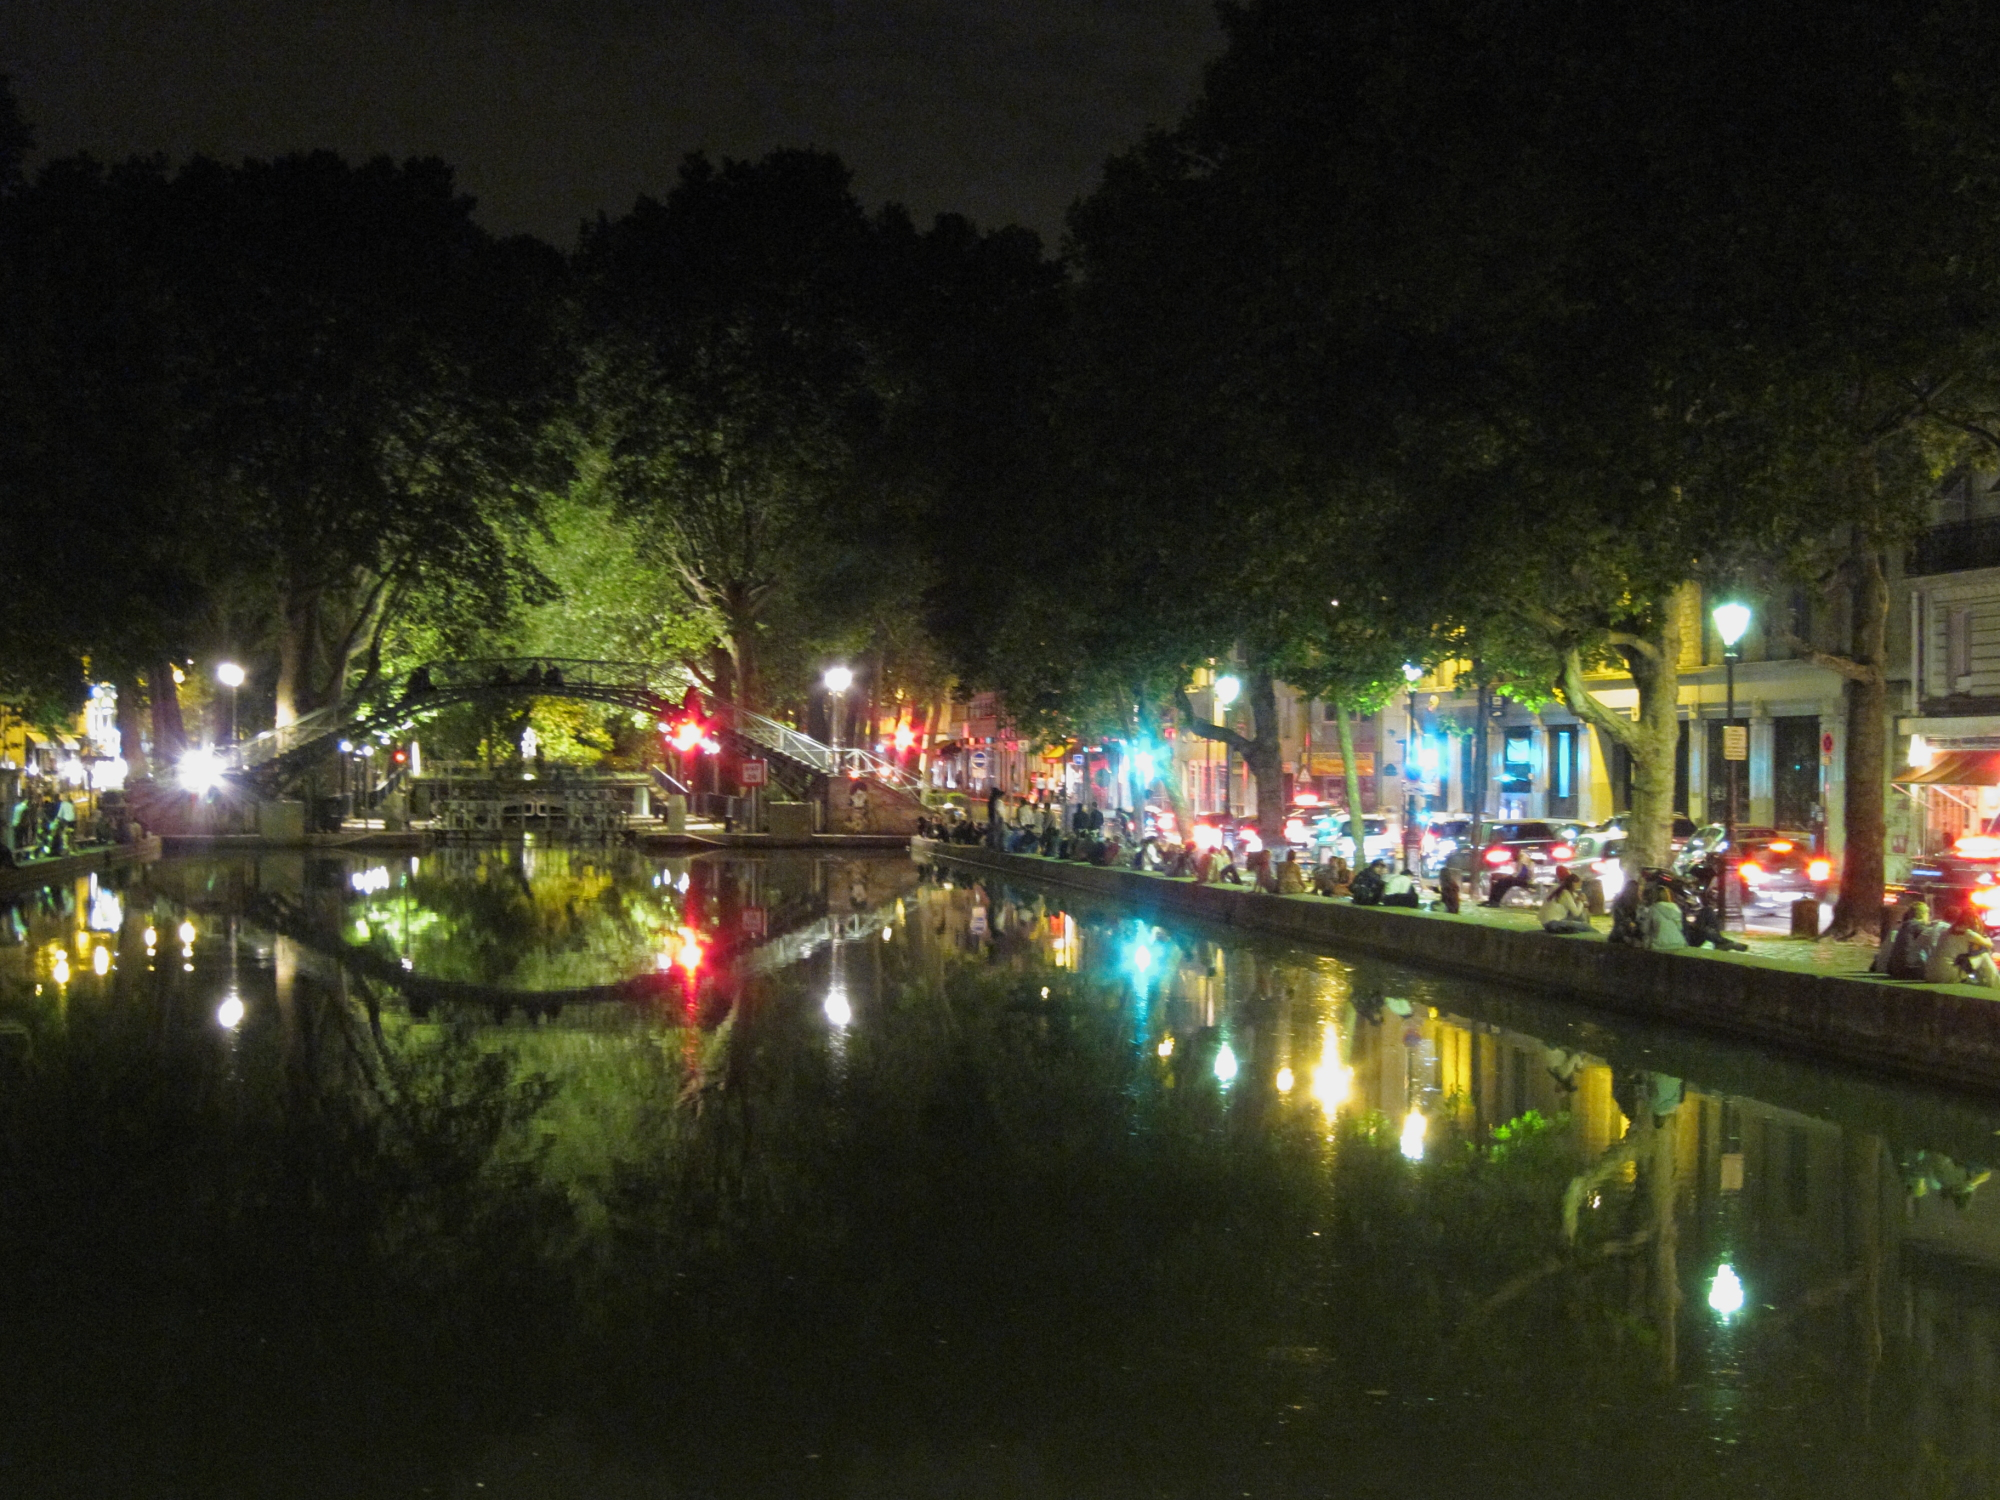 Canal Saint-Martin at midnight. Summer in Paris!